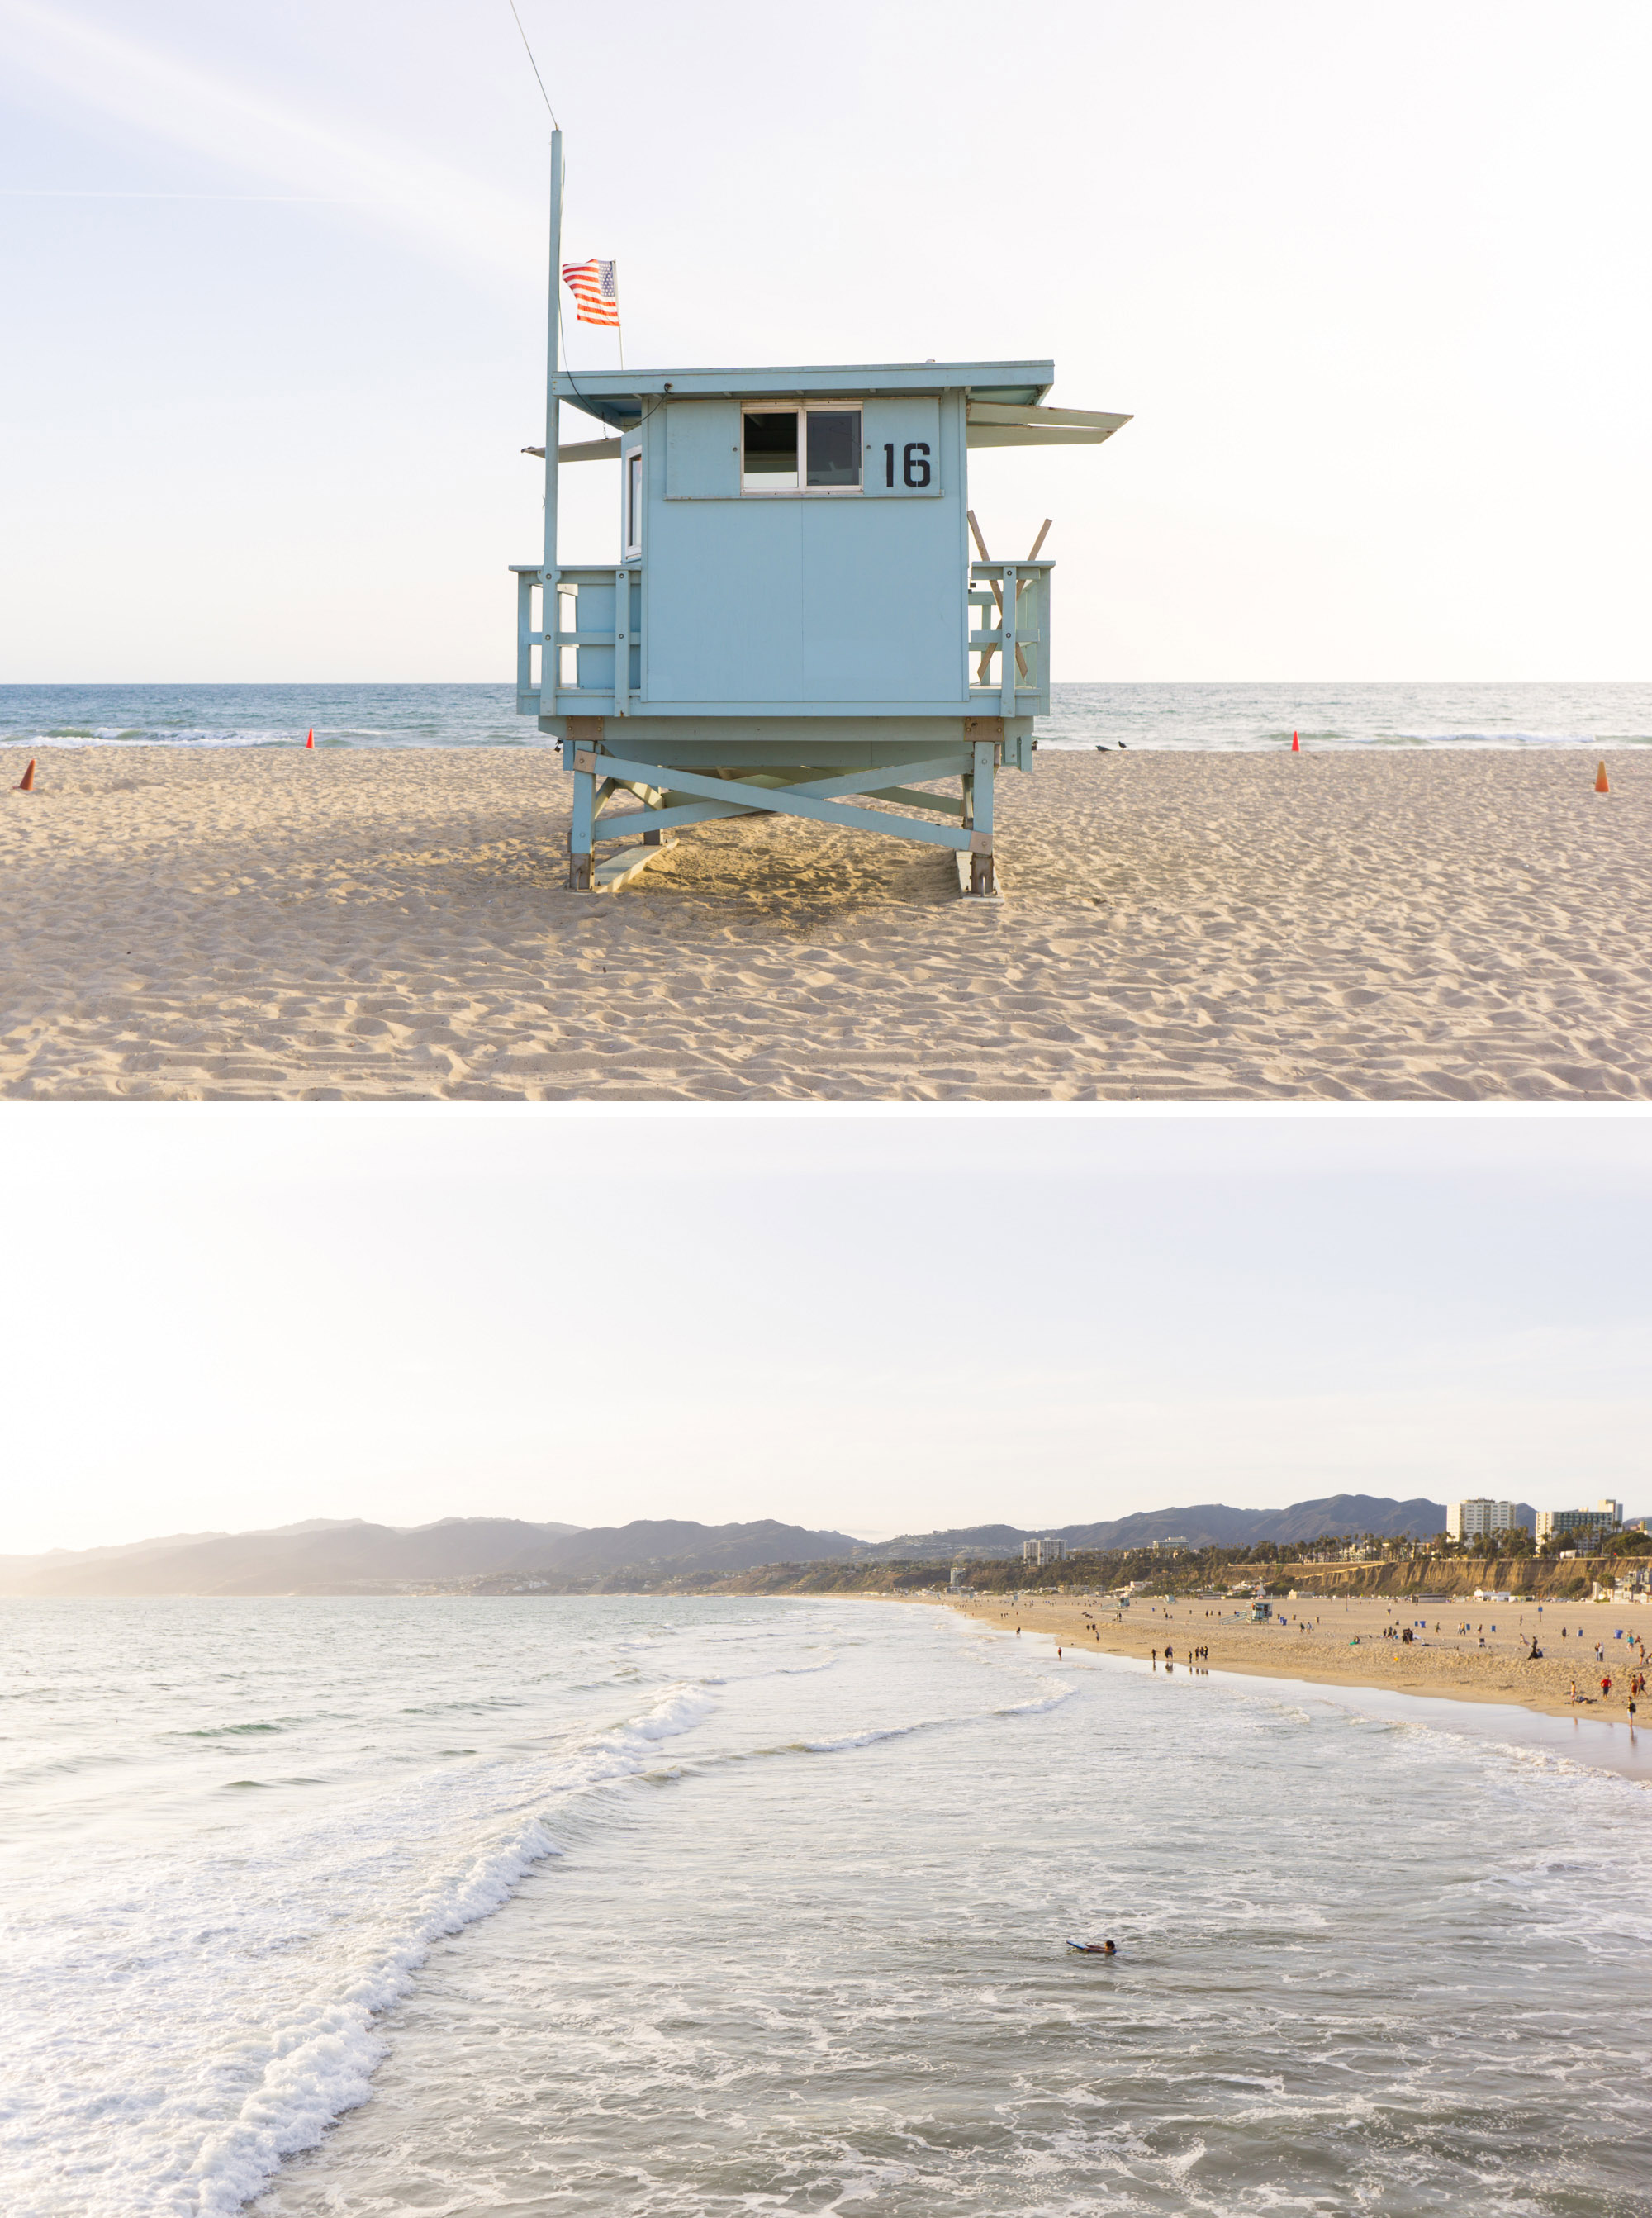 Los Angeles Travel Guide   California Travel Tips   Sharing where to visit and explore when in Los Angeles, the city of angels.